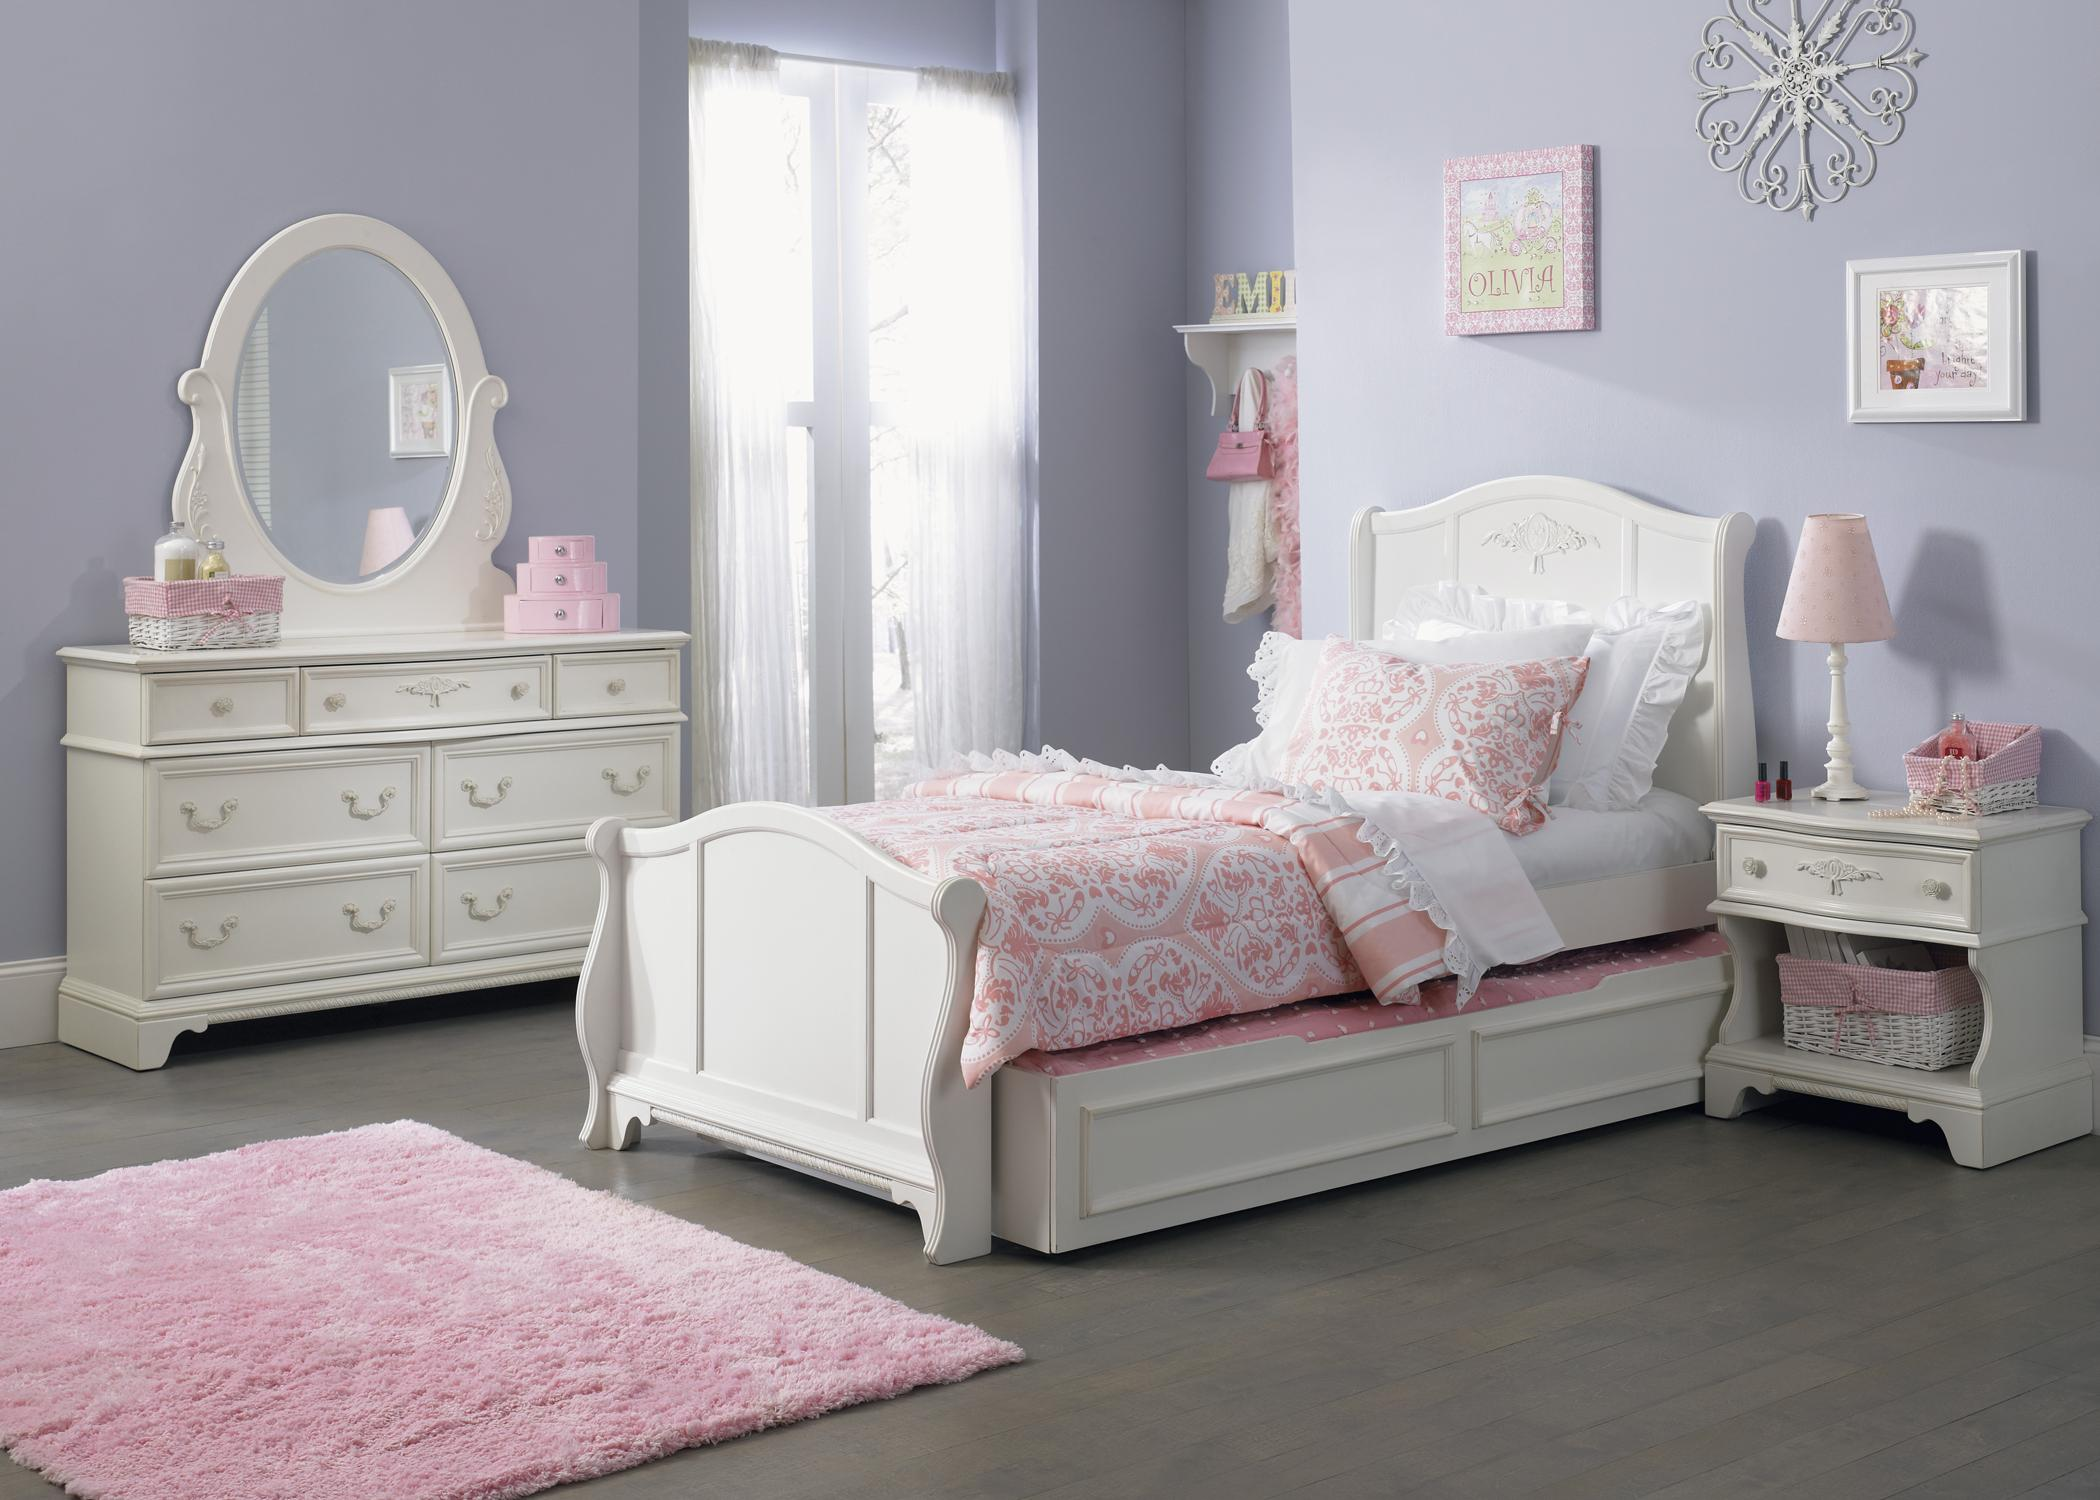 Arielle Youth Bedroom (352) By Liberty Furniture   Coconis Furniture U0026  Mattress 1st   Liberty Furniture Arielle Youth Bedroom Dealer